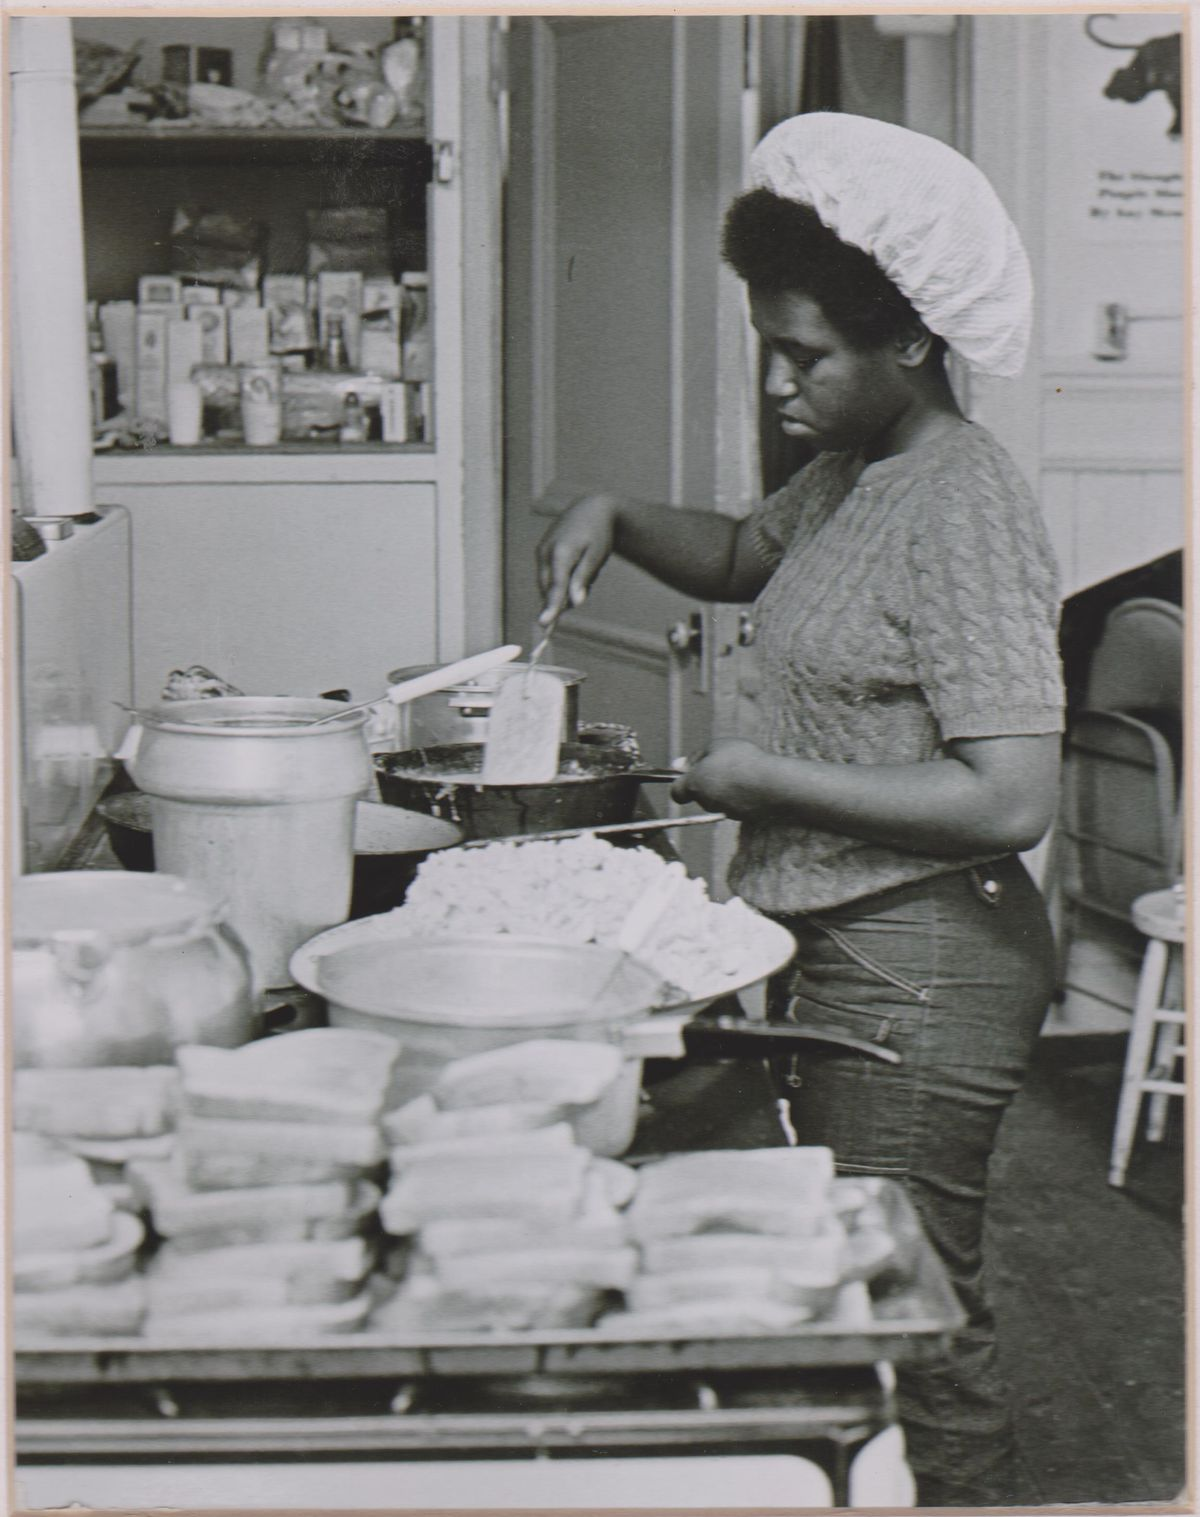 A cook wearing a hairnet stands in a kitchen preparing meals for school children.